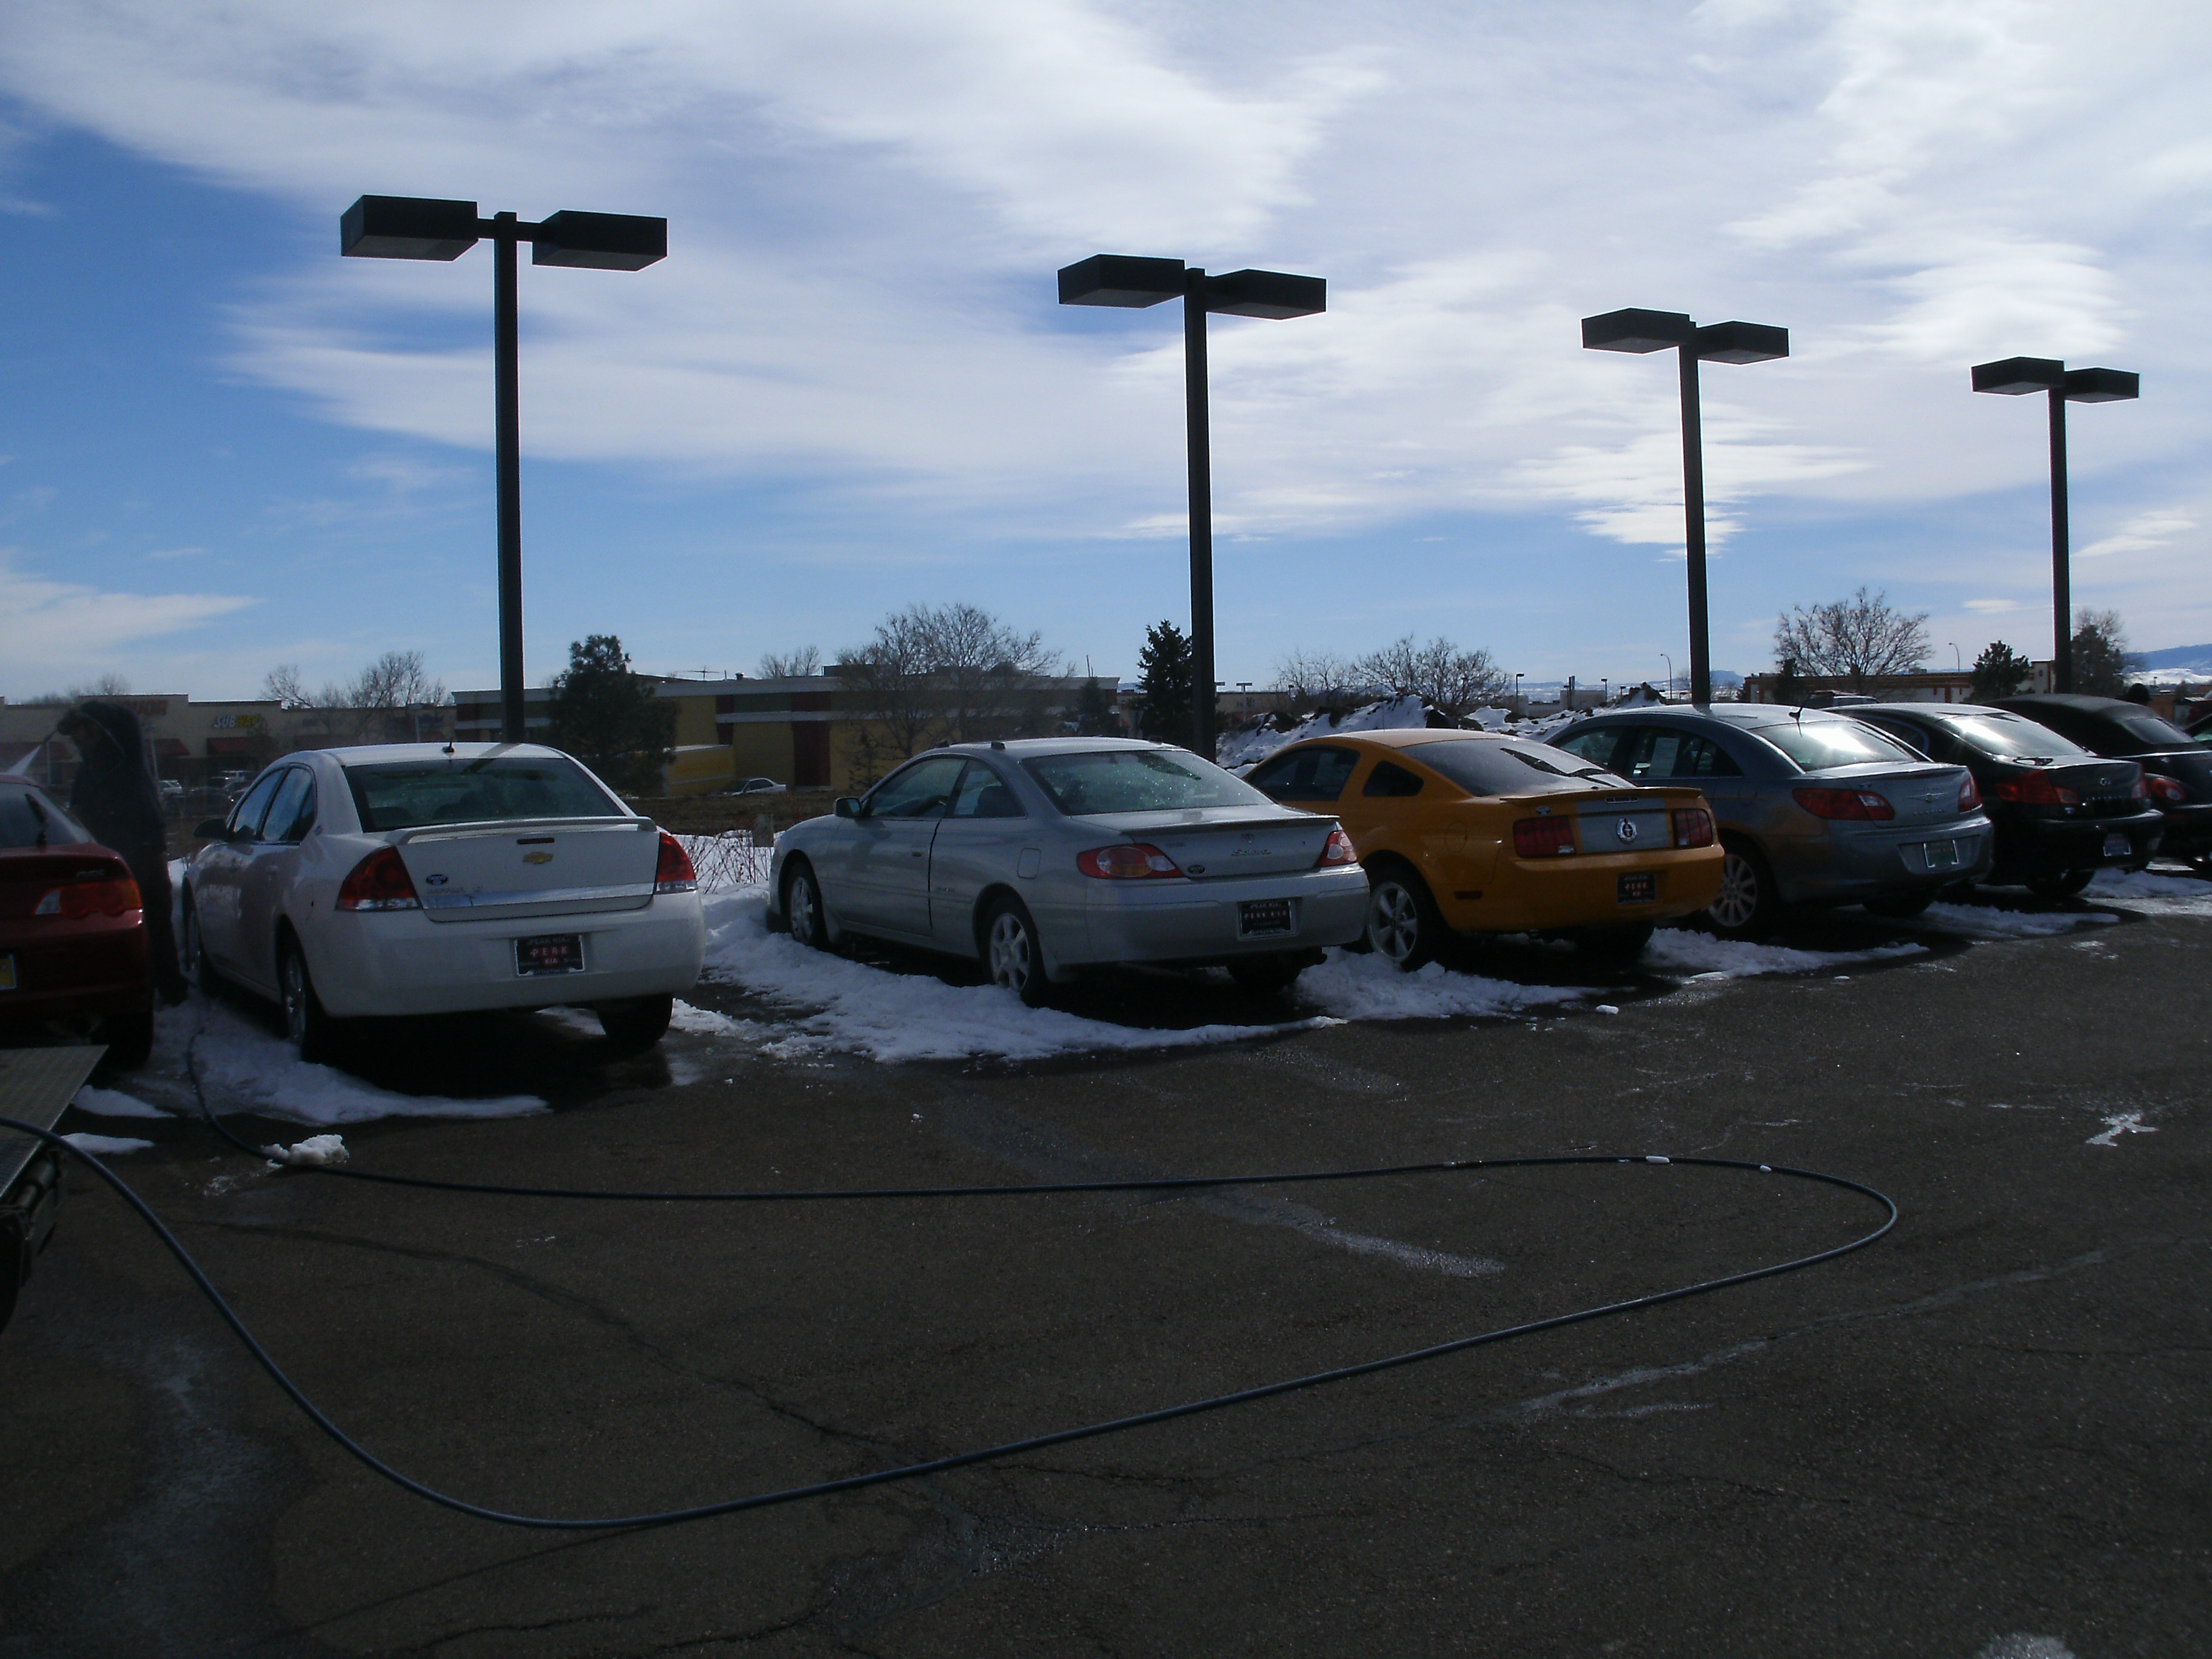 Denver Car Dealerships >> Car Washing For A New Dealer - Working Out The Bugs!